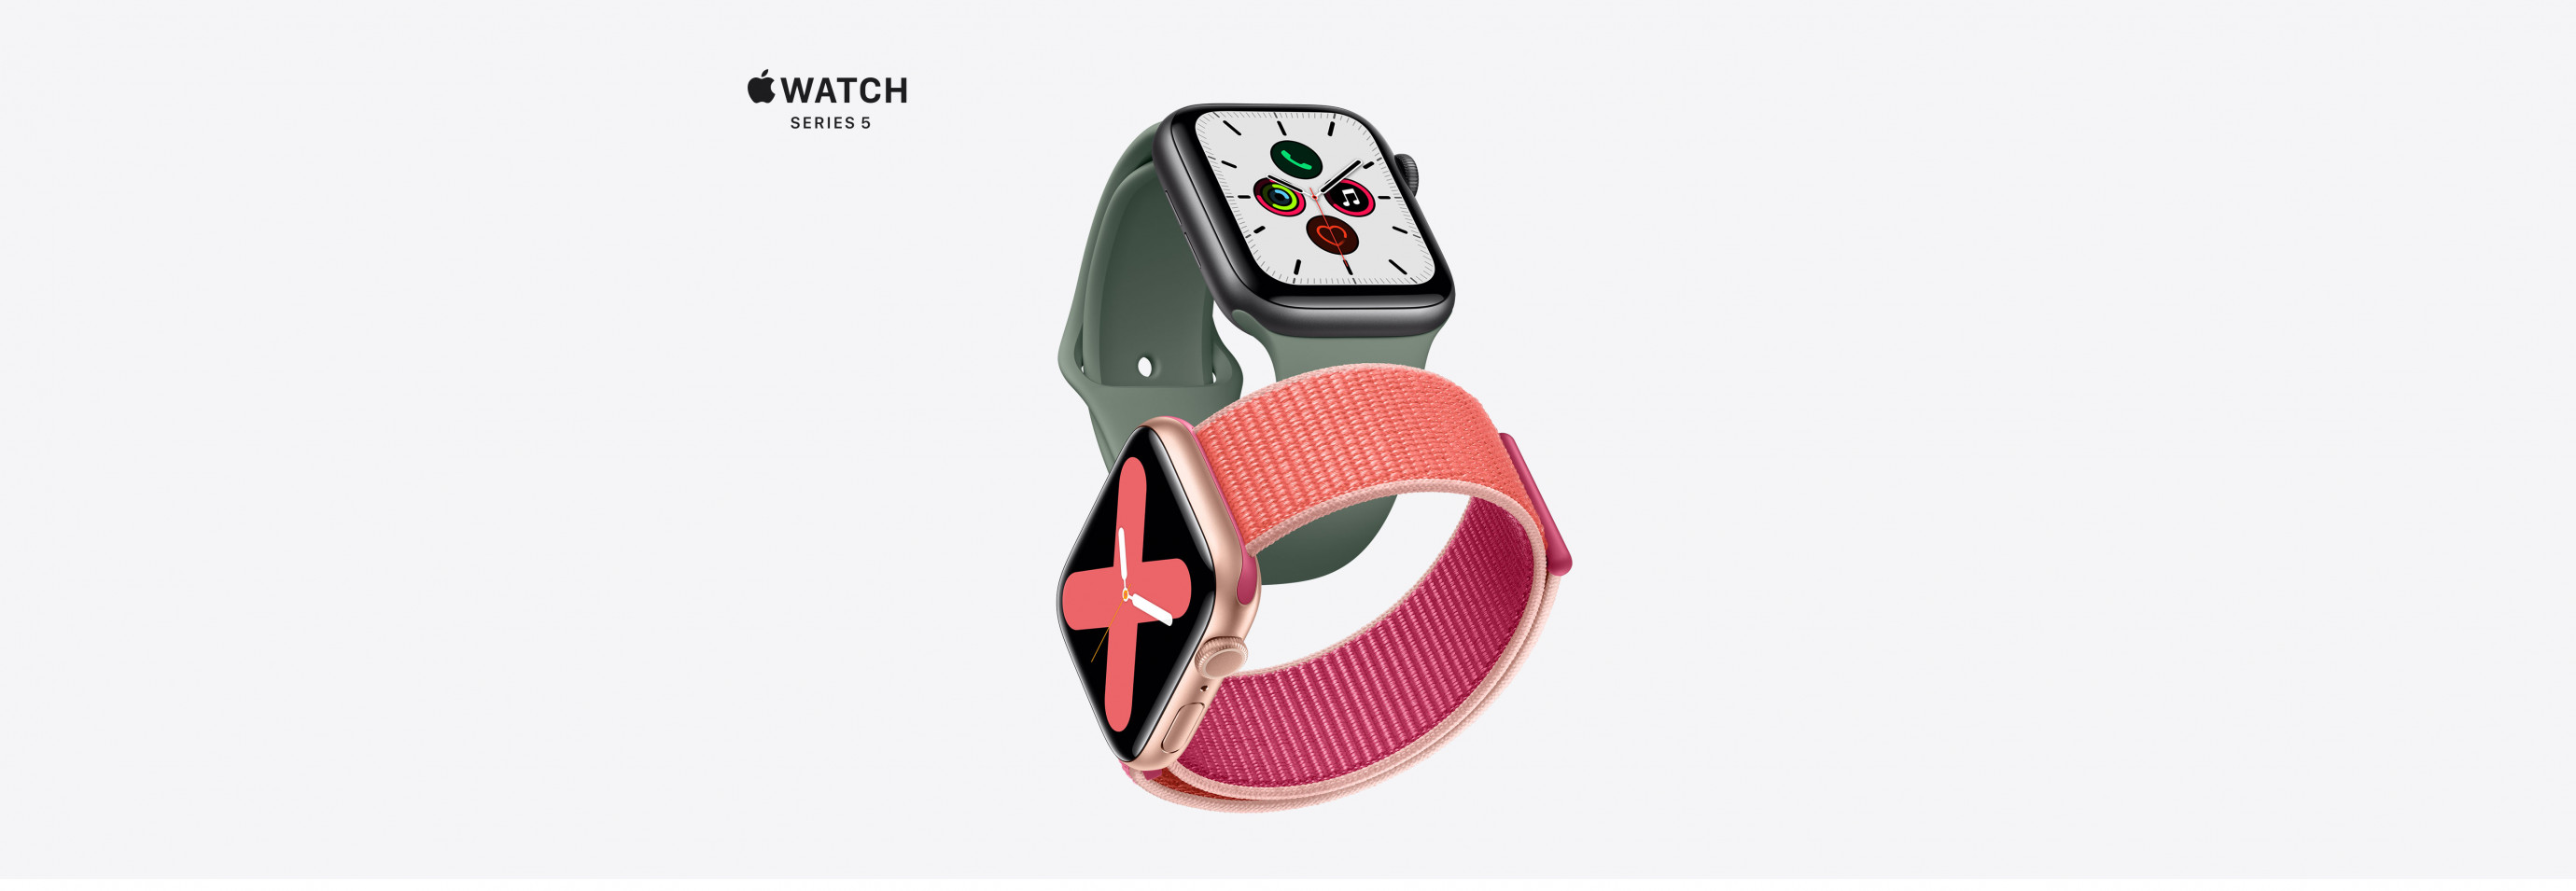 AppleWatchSeries5-productpage_01.jpg